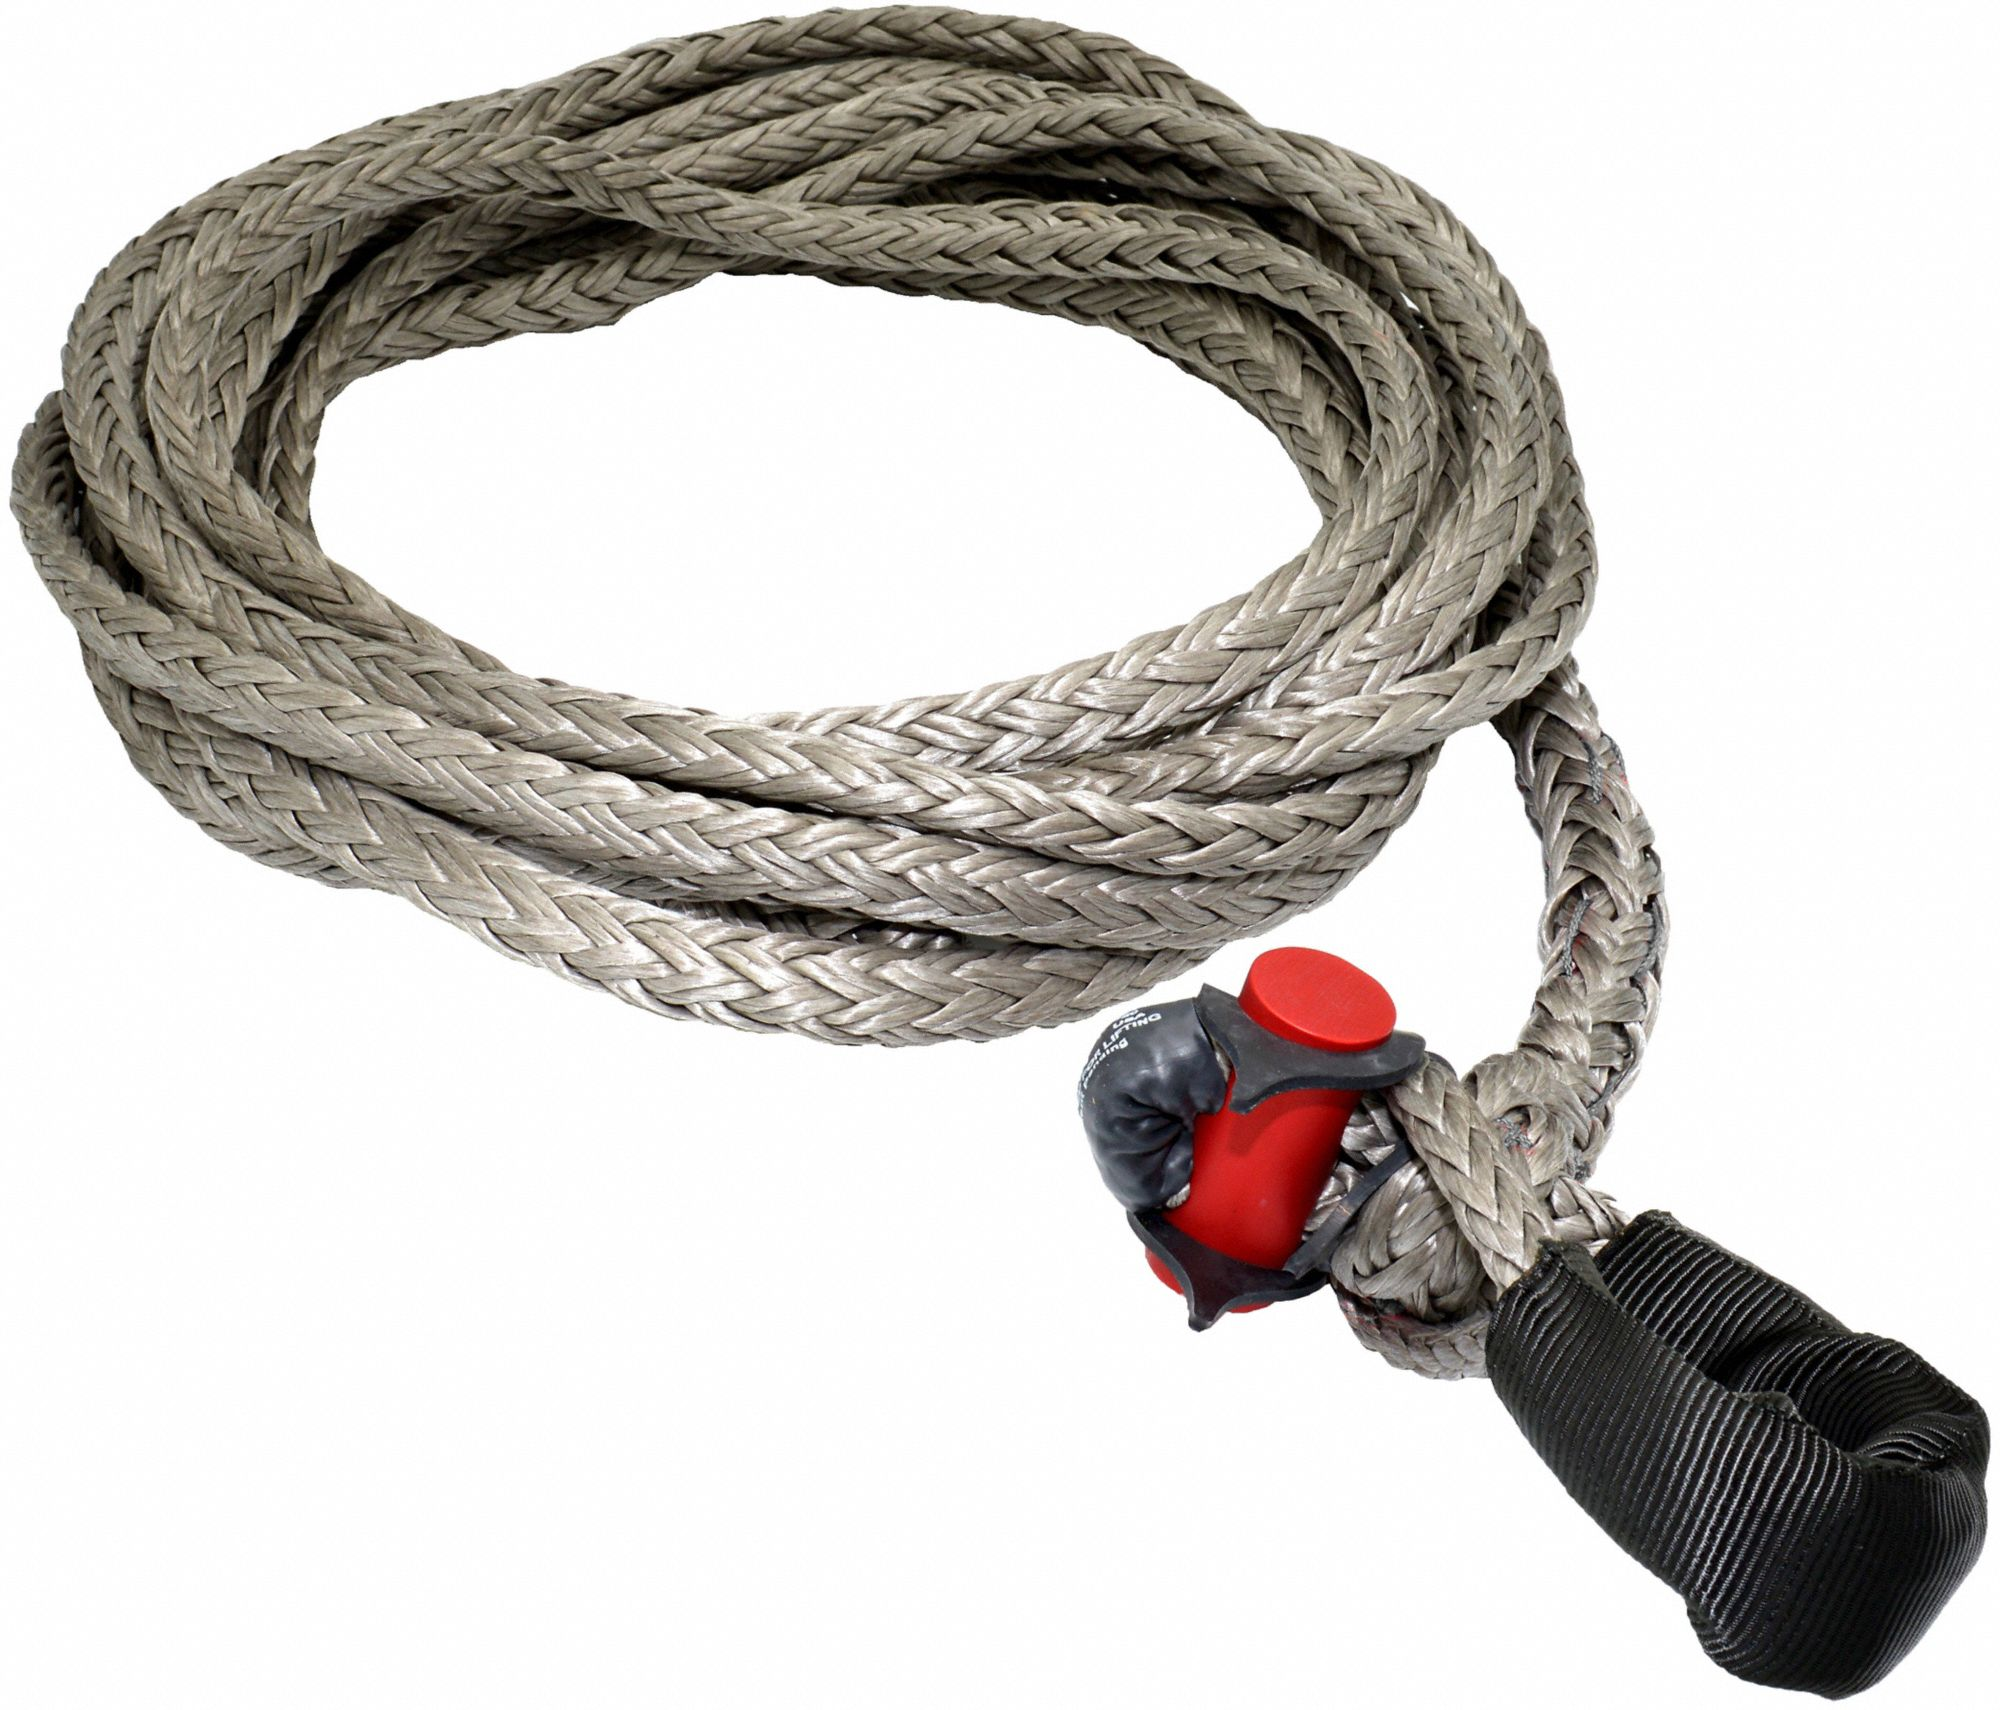 25 ft Synthetic Winch Line with 10,700 lb Working Load Limit